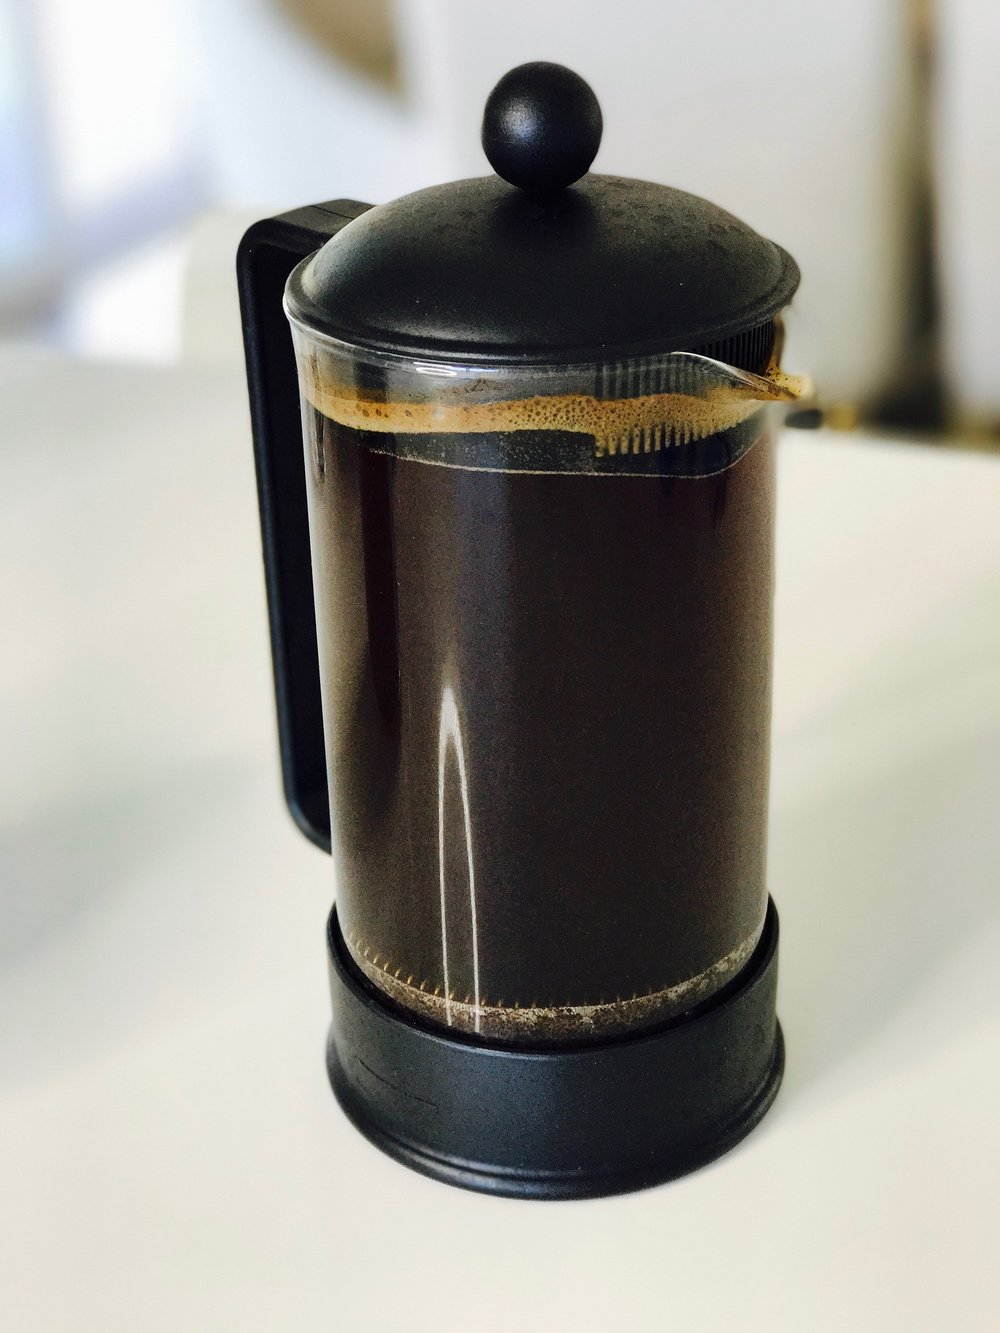 Most of us have a French press collecting dust somewhere in our kitchen -- Cold Brew gives us a great excuse to dust that puppy off and get brewing!!